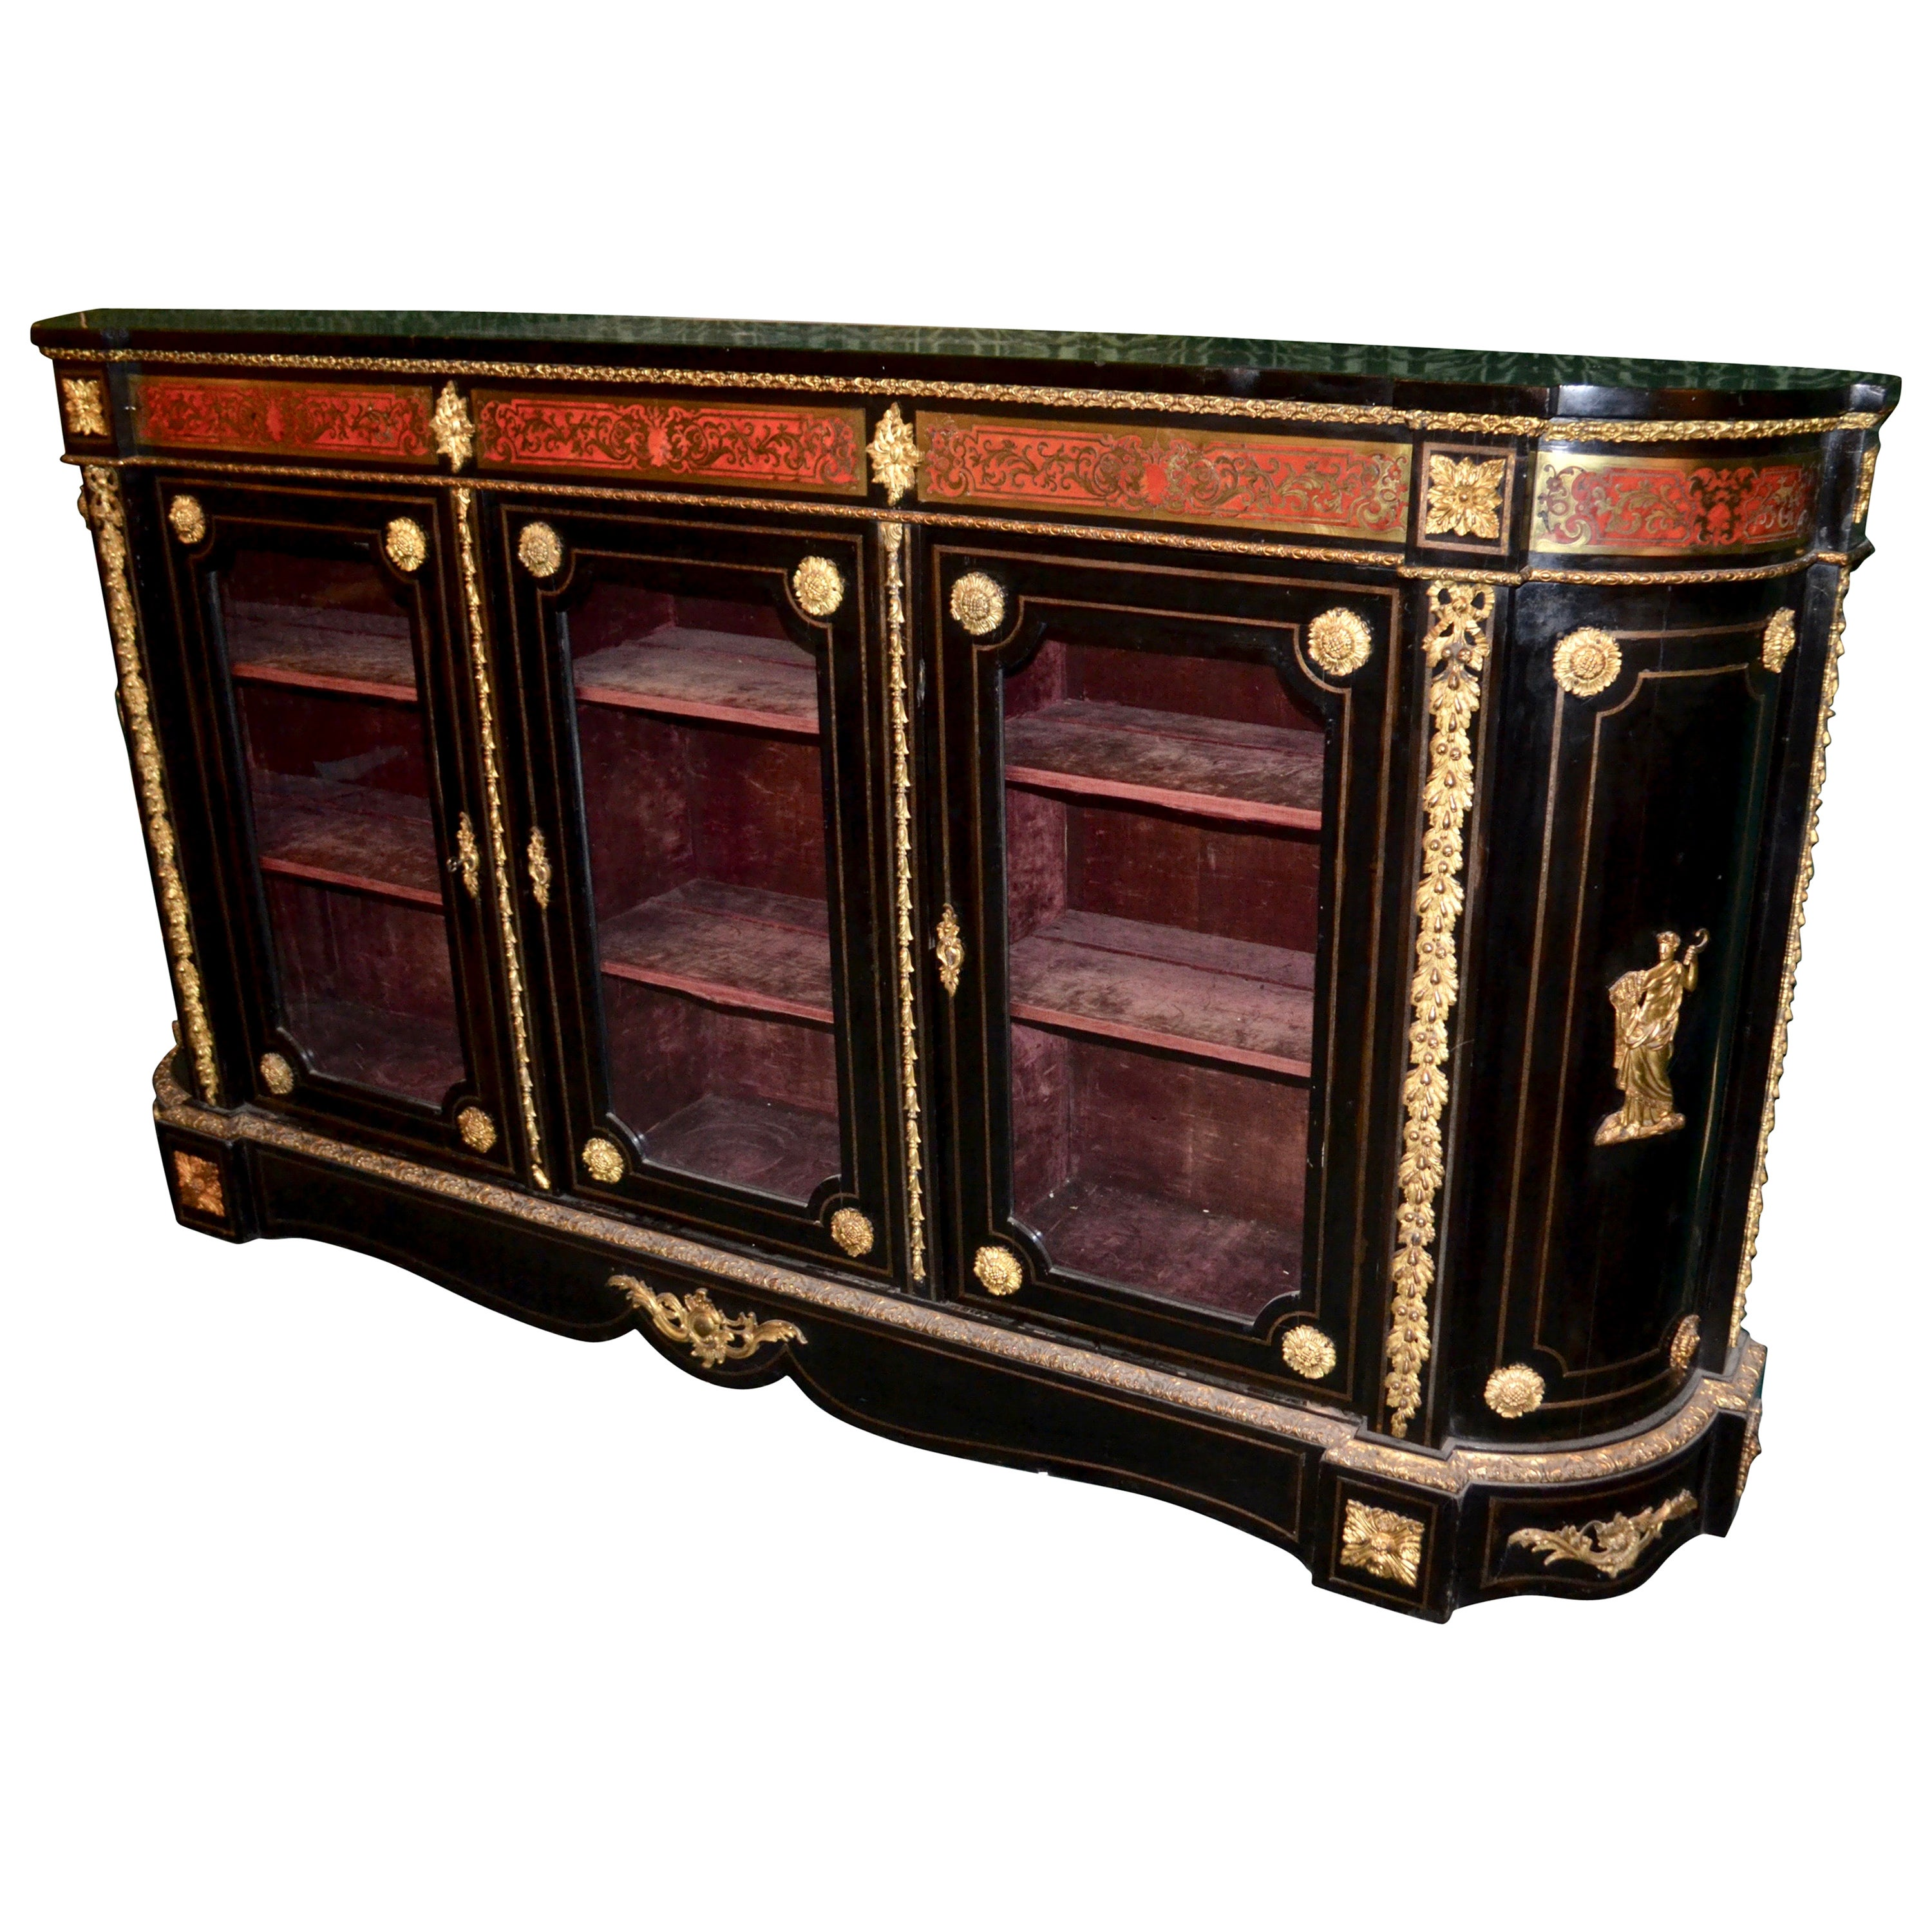 19th Century French Boulle Bookcase